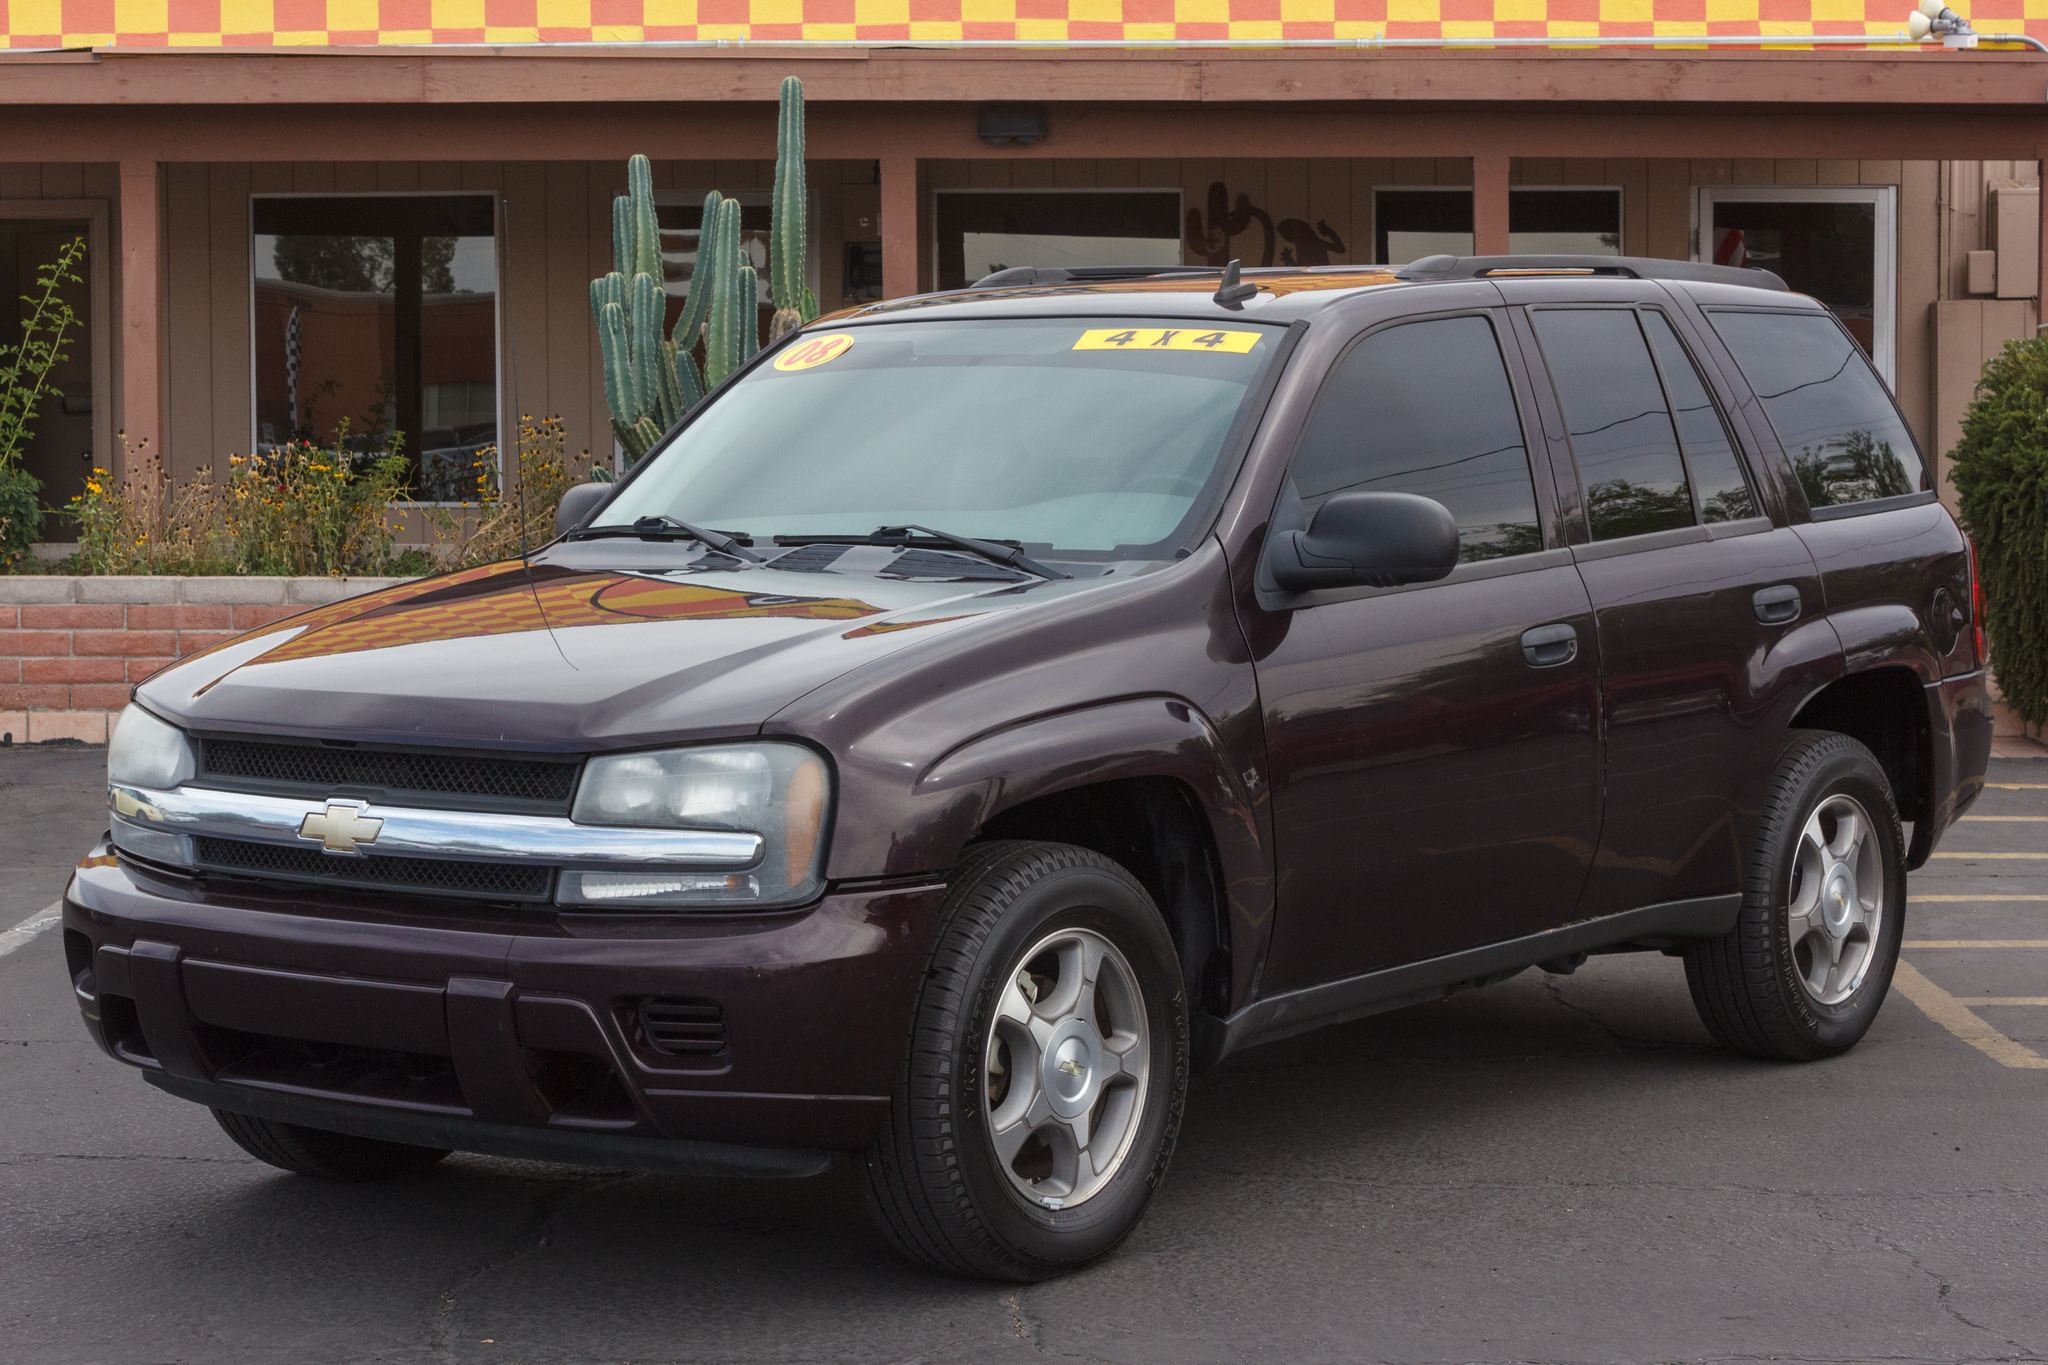 Photo of 2008 Chevrolet Trailblazer 2WD 4d Wagon FL1